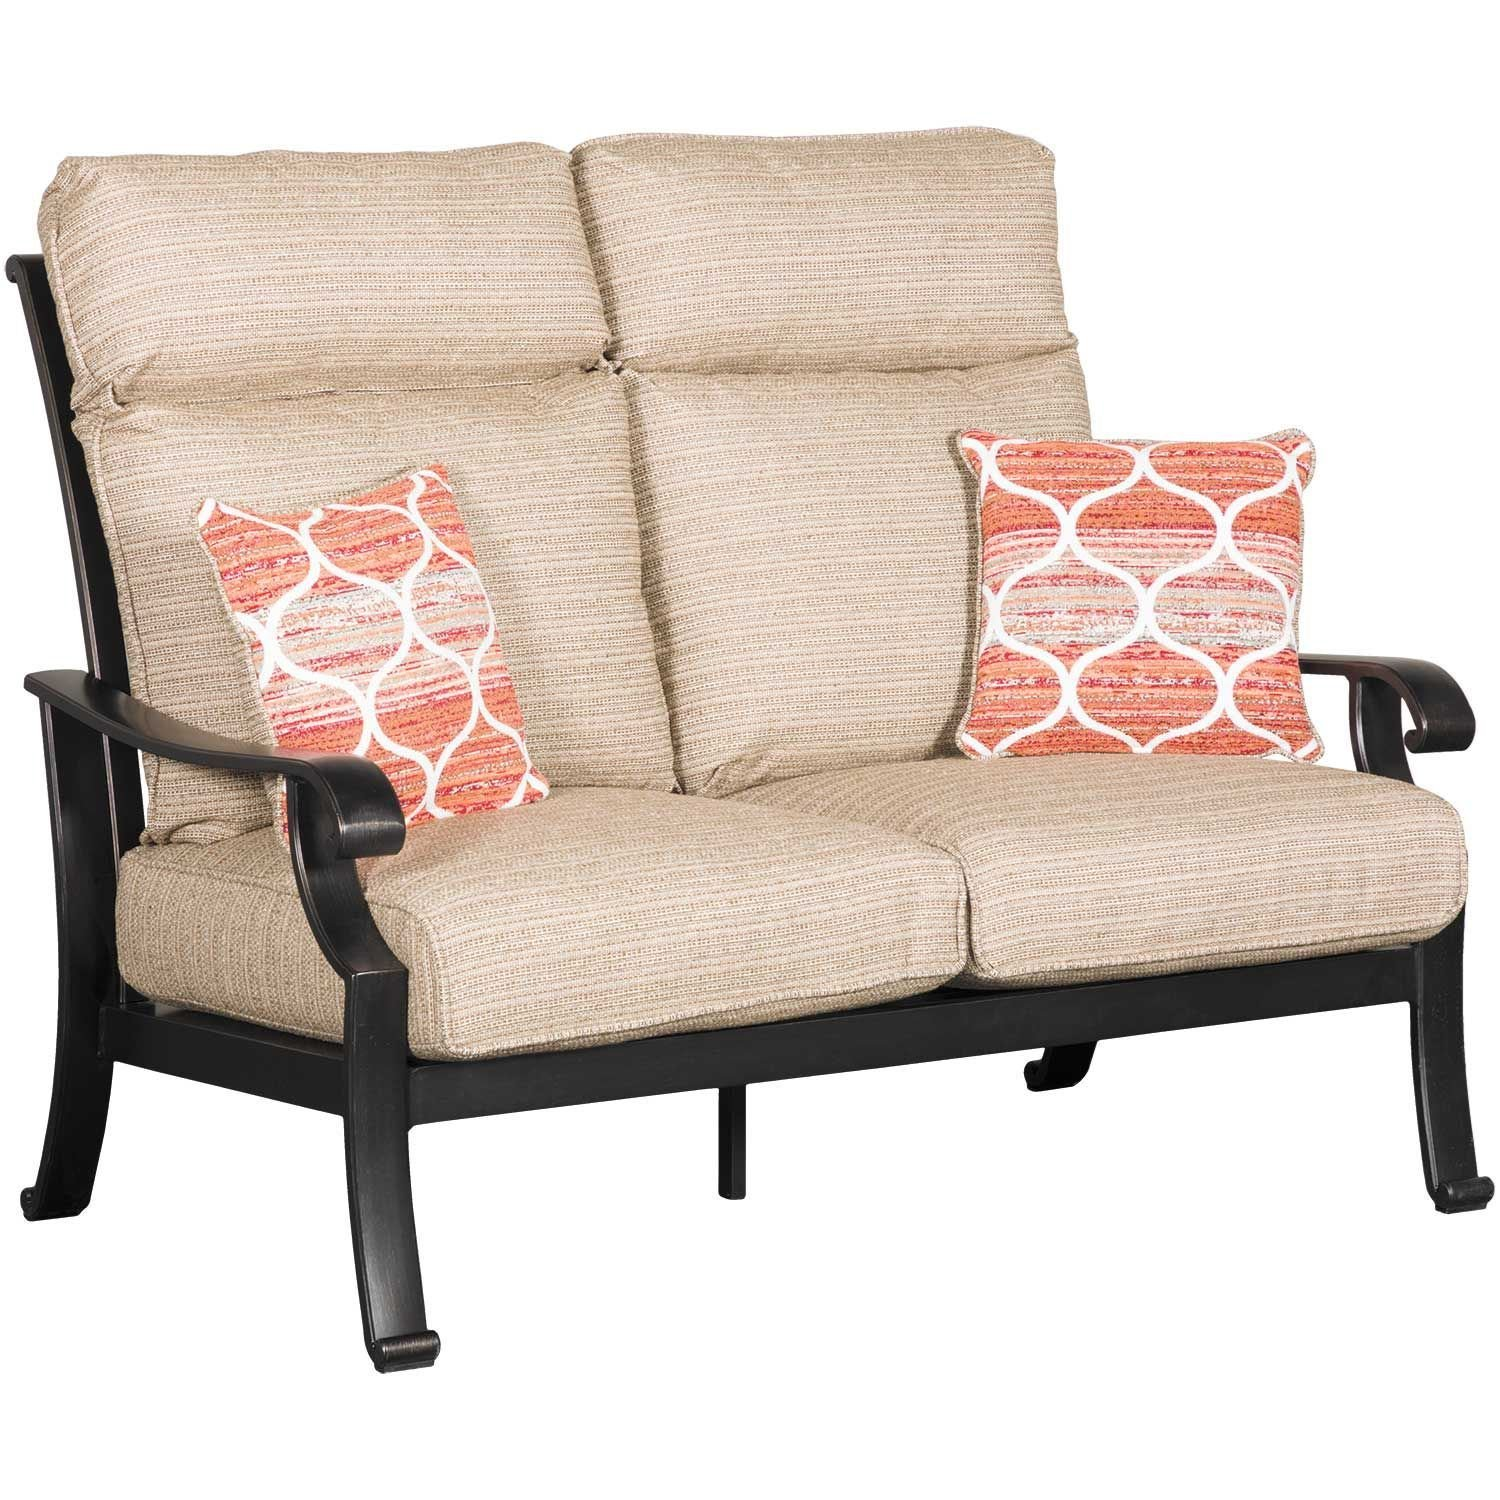 Picture Of Chestnut Ridge Loveseat With Cushion